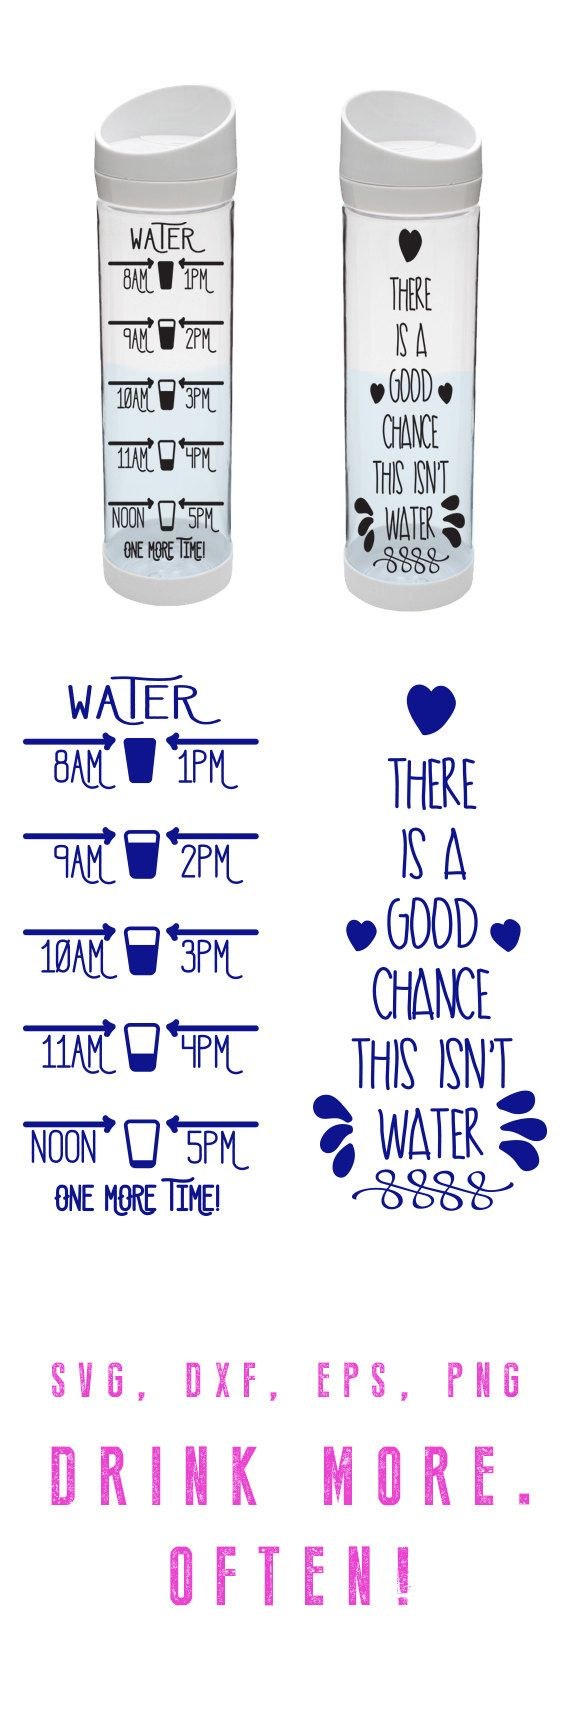 Water Bottle Svg Free : water, bottle, Silhouette